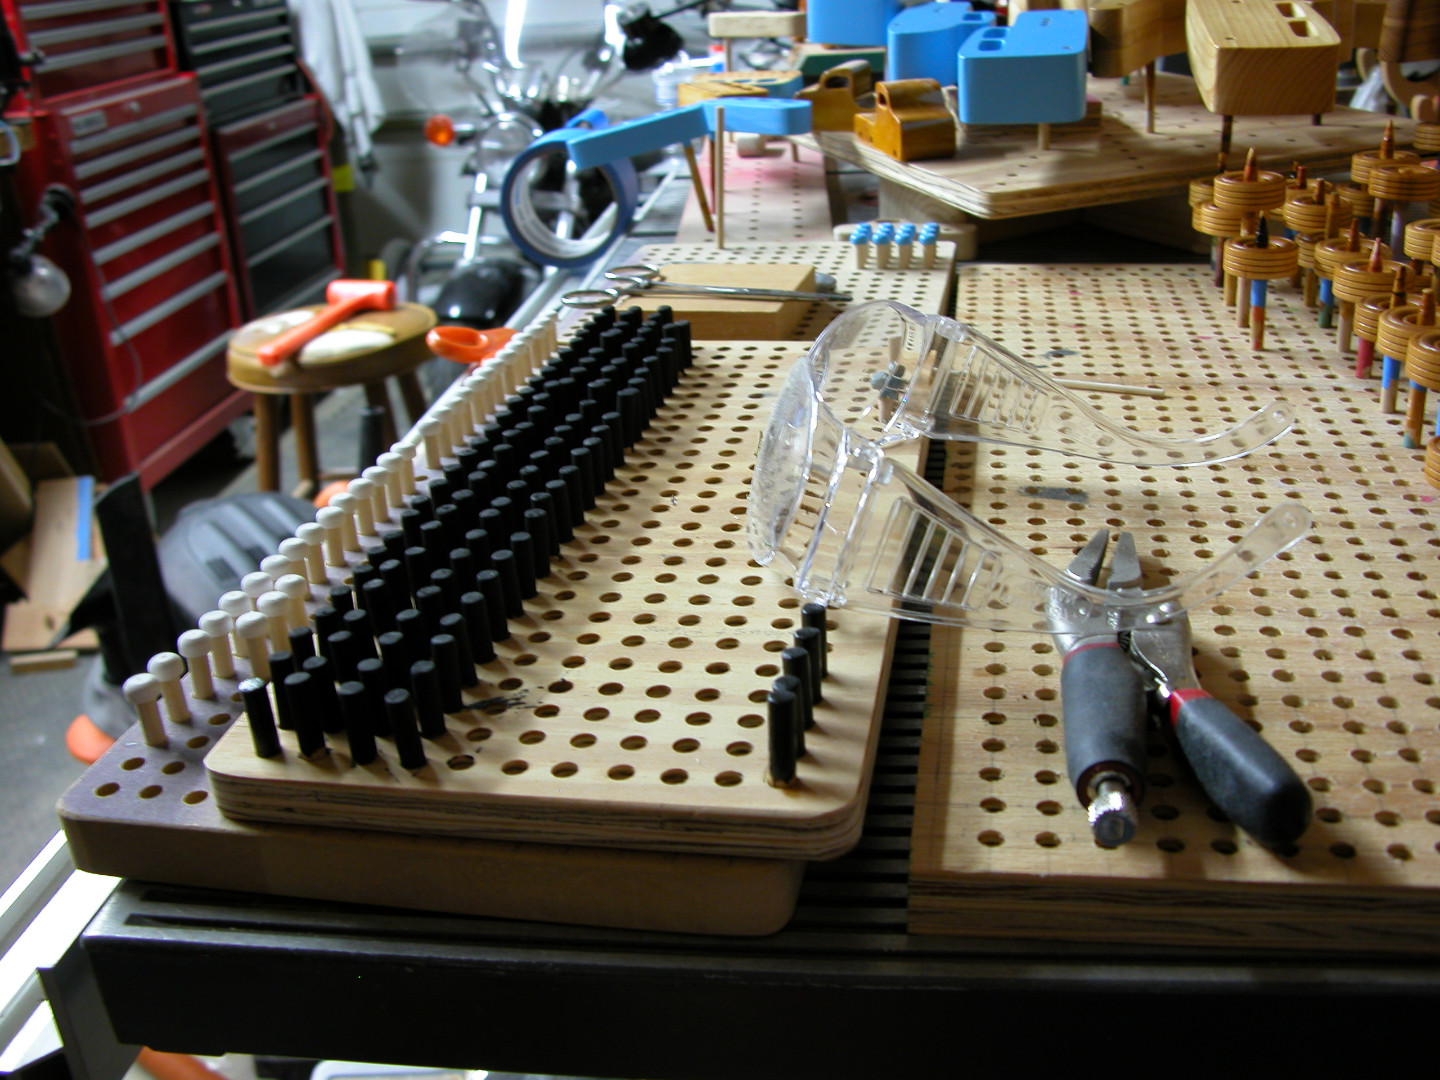 20131201-203835 004 Toymakers Shop Parts Holding Jig Holding Toy Wheel.jpg